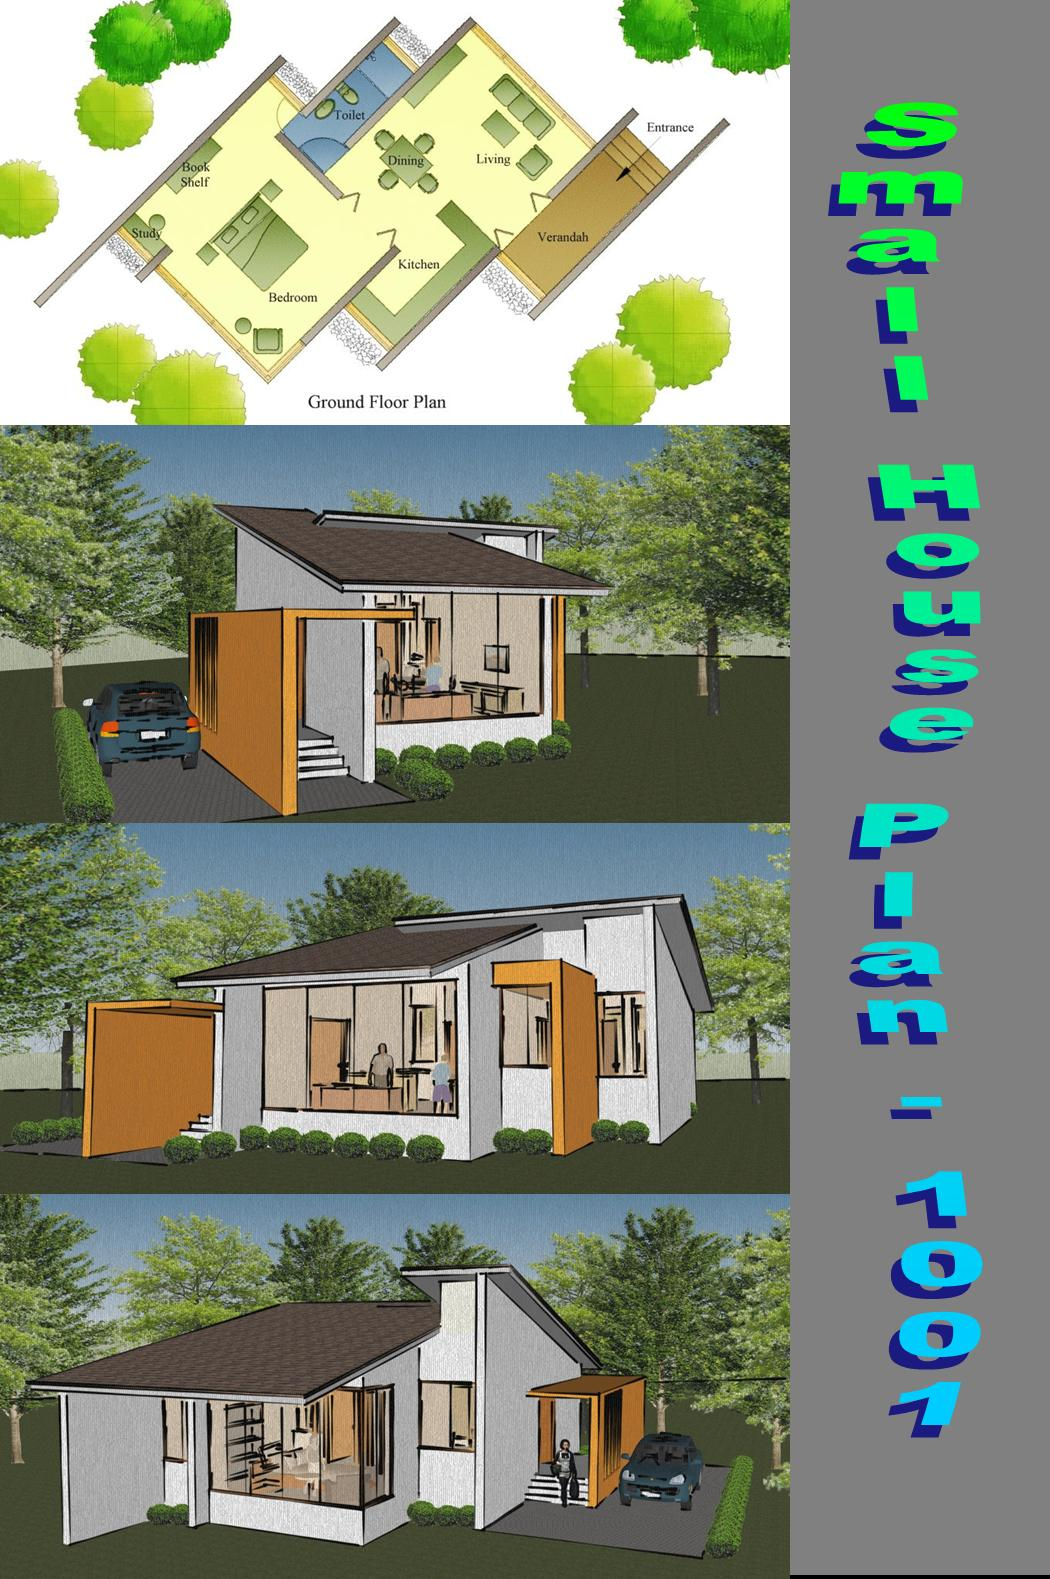 Home plans in india 5 best small home plans from for Home plans com